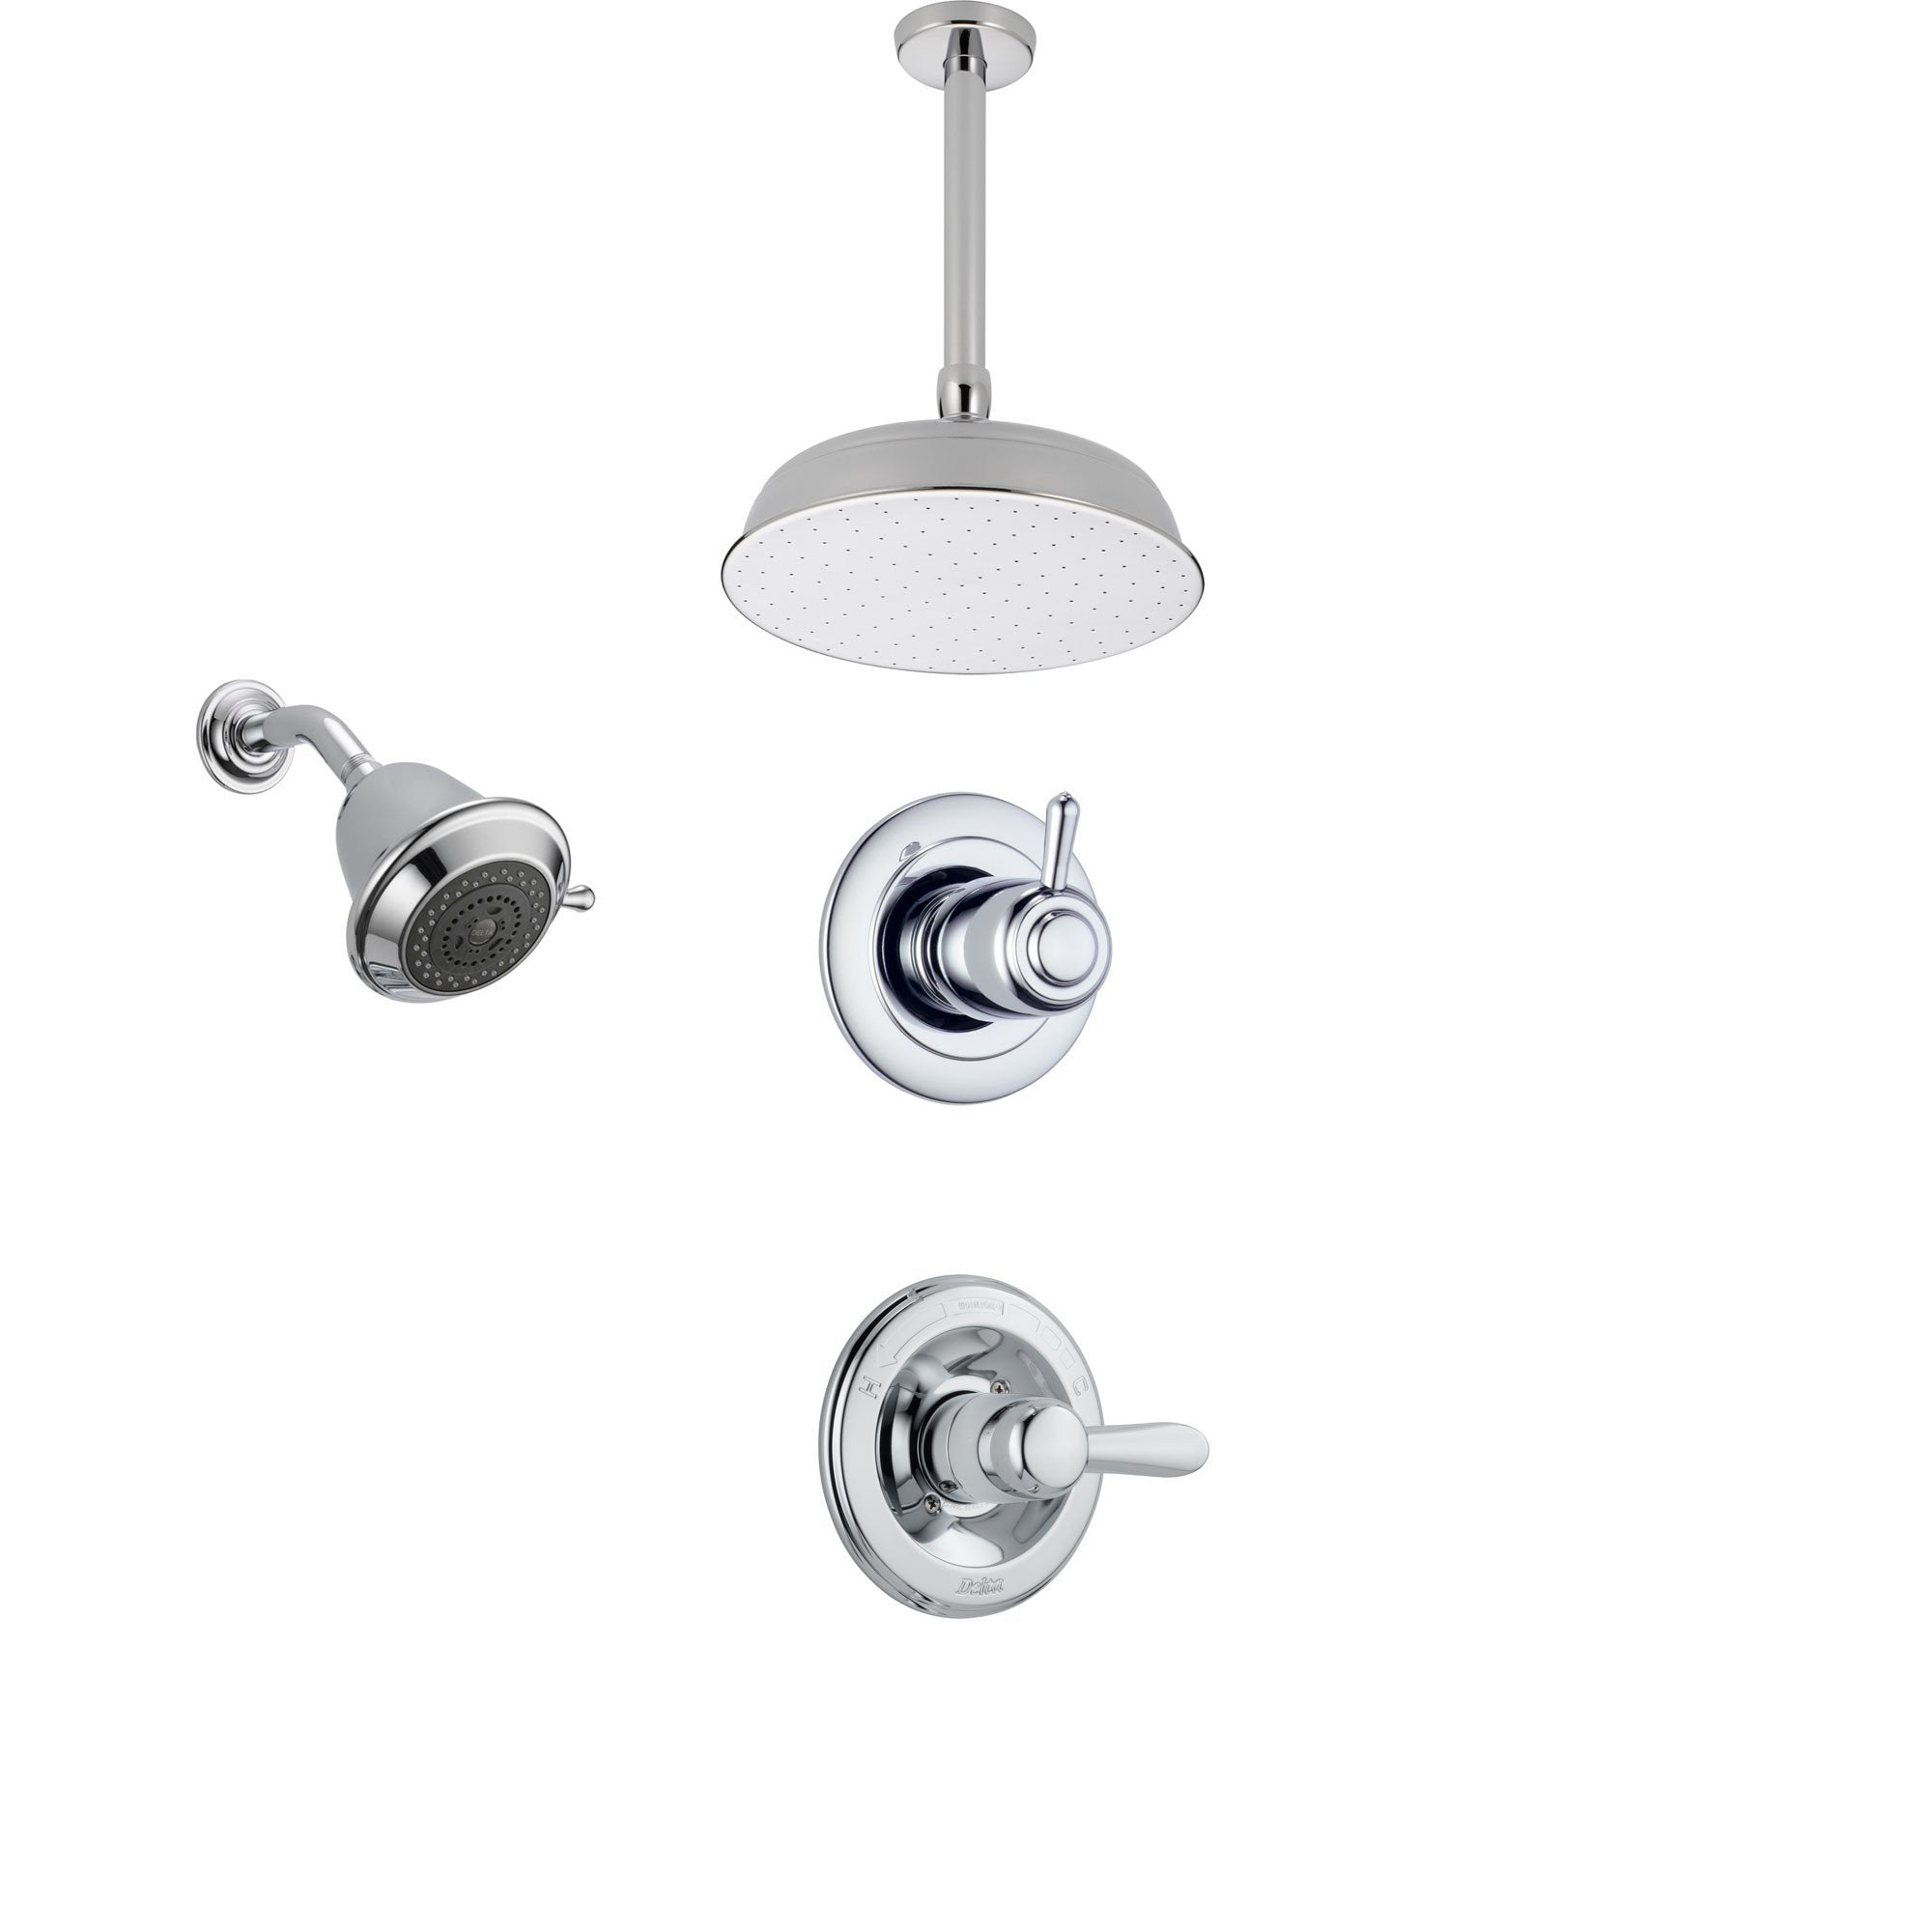 Delta Lahara Chrome Shower System with Normal Shower Handle, 3-setting Diverter, Large Ceiling Mount Rain Showerhead, and Wall Mount Showerhead SS143883